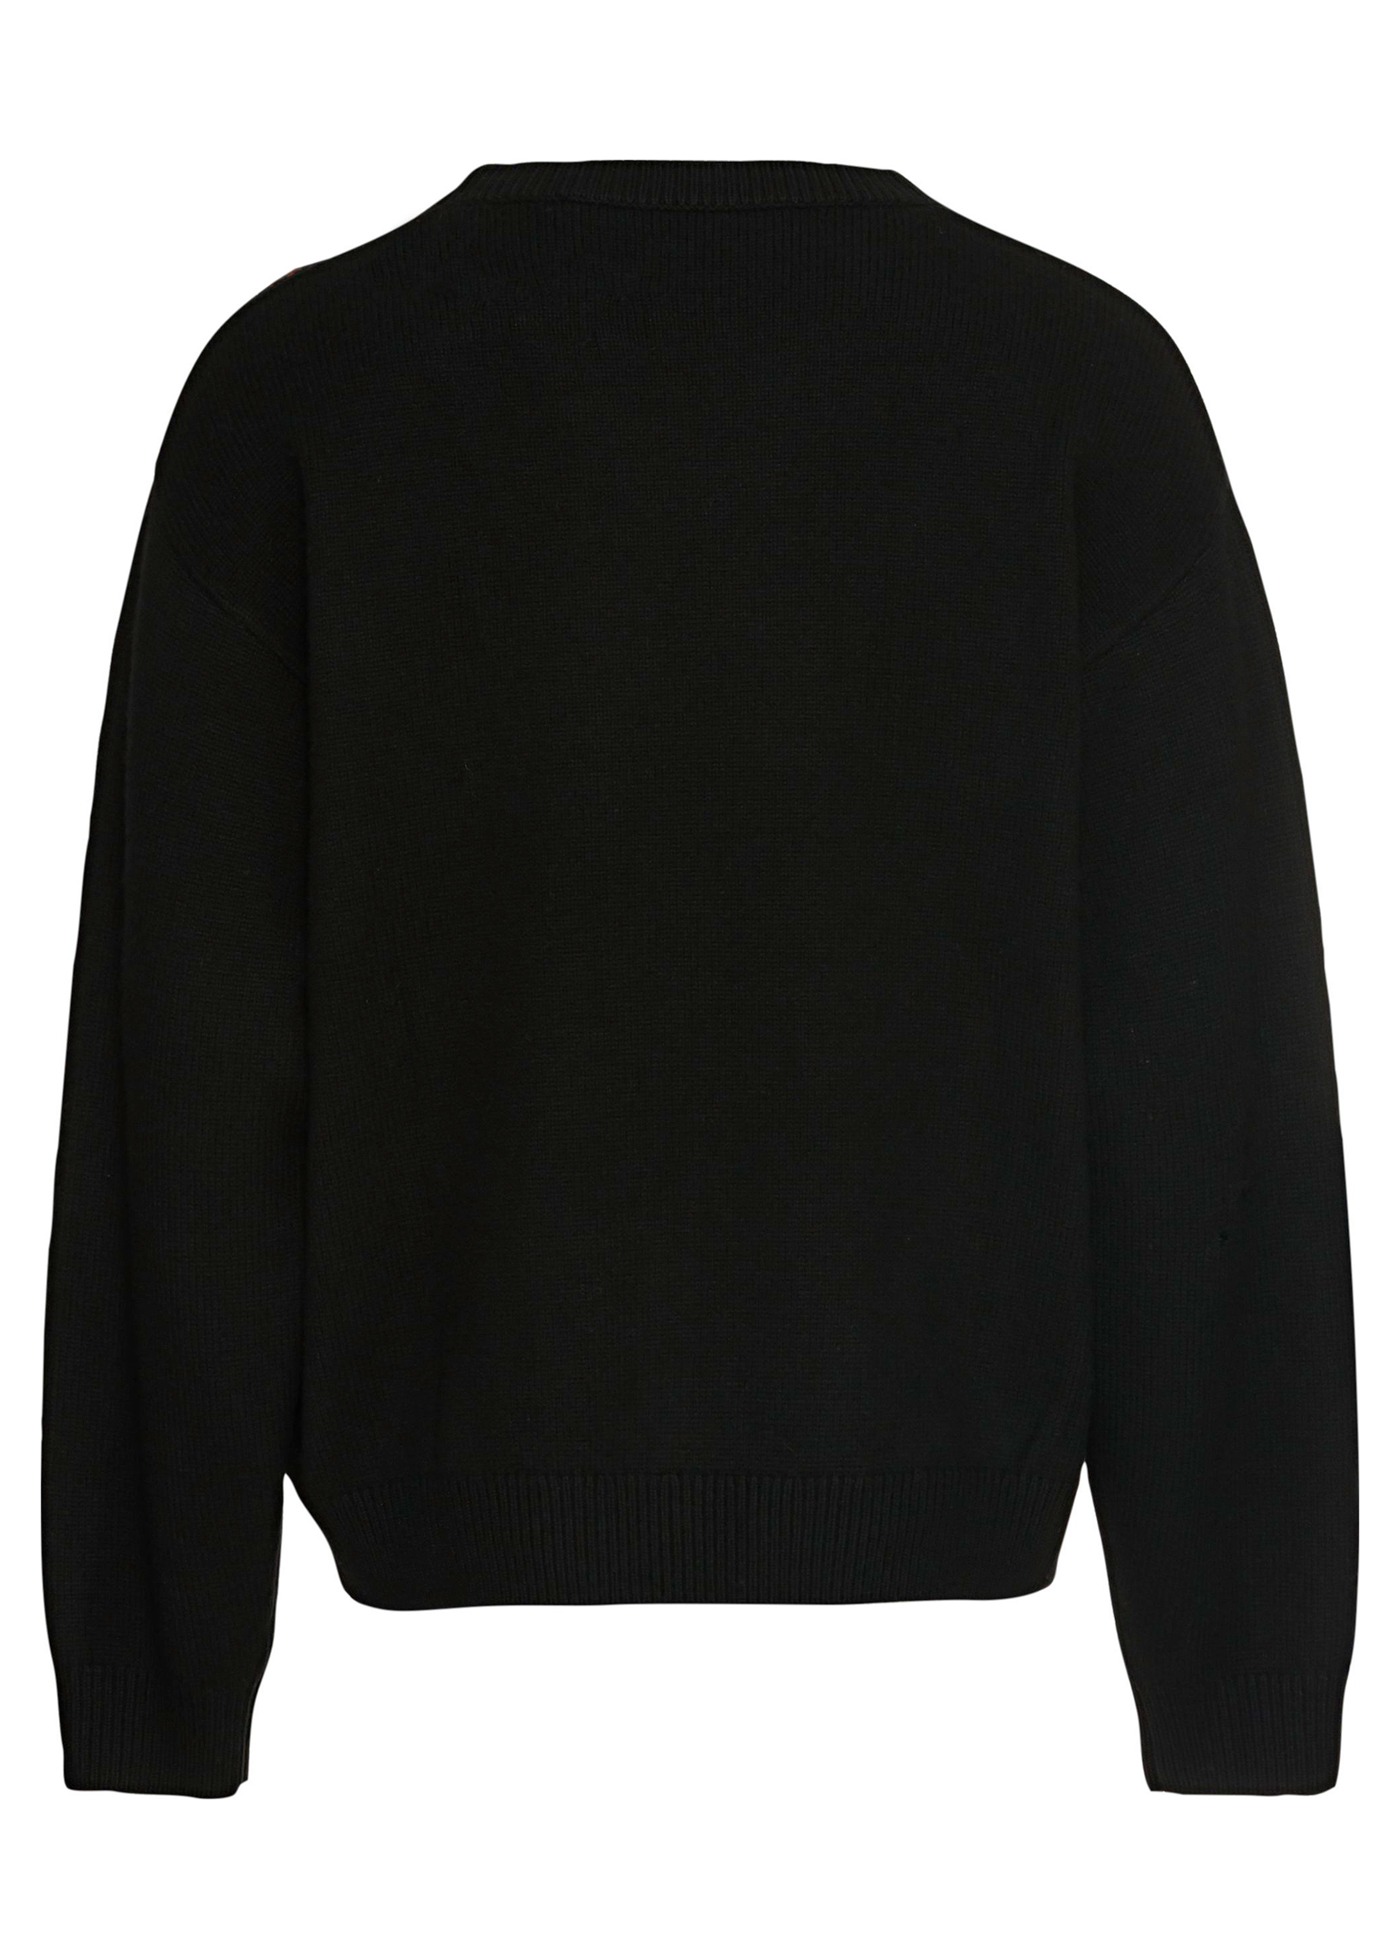 REPAIRED PULLOVER image number 1